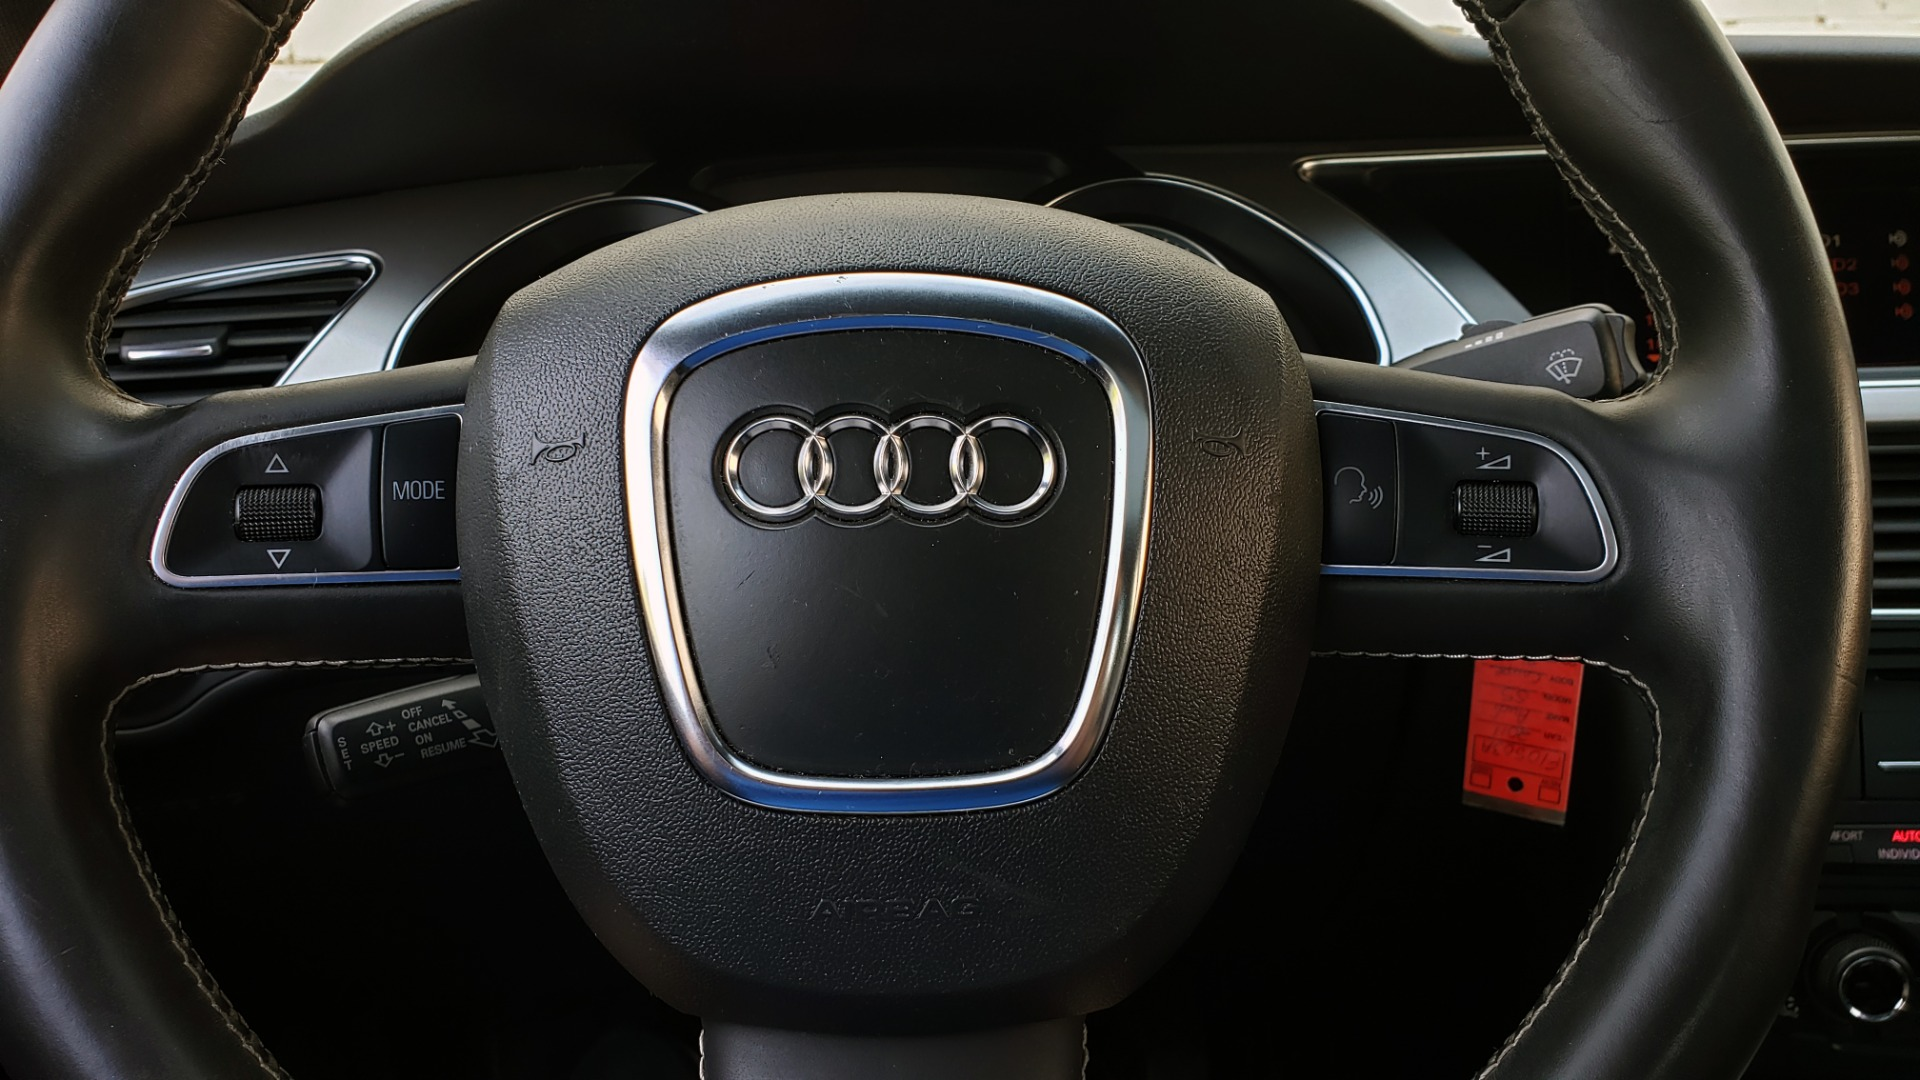 Used 2011 Audi S5 PREMIUM PLUS / AVENGERS COUPE / NAV / SUNROOF / REARVIEW for sale Sold at Formula Imports in Charlotte NC 28227 46